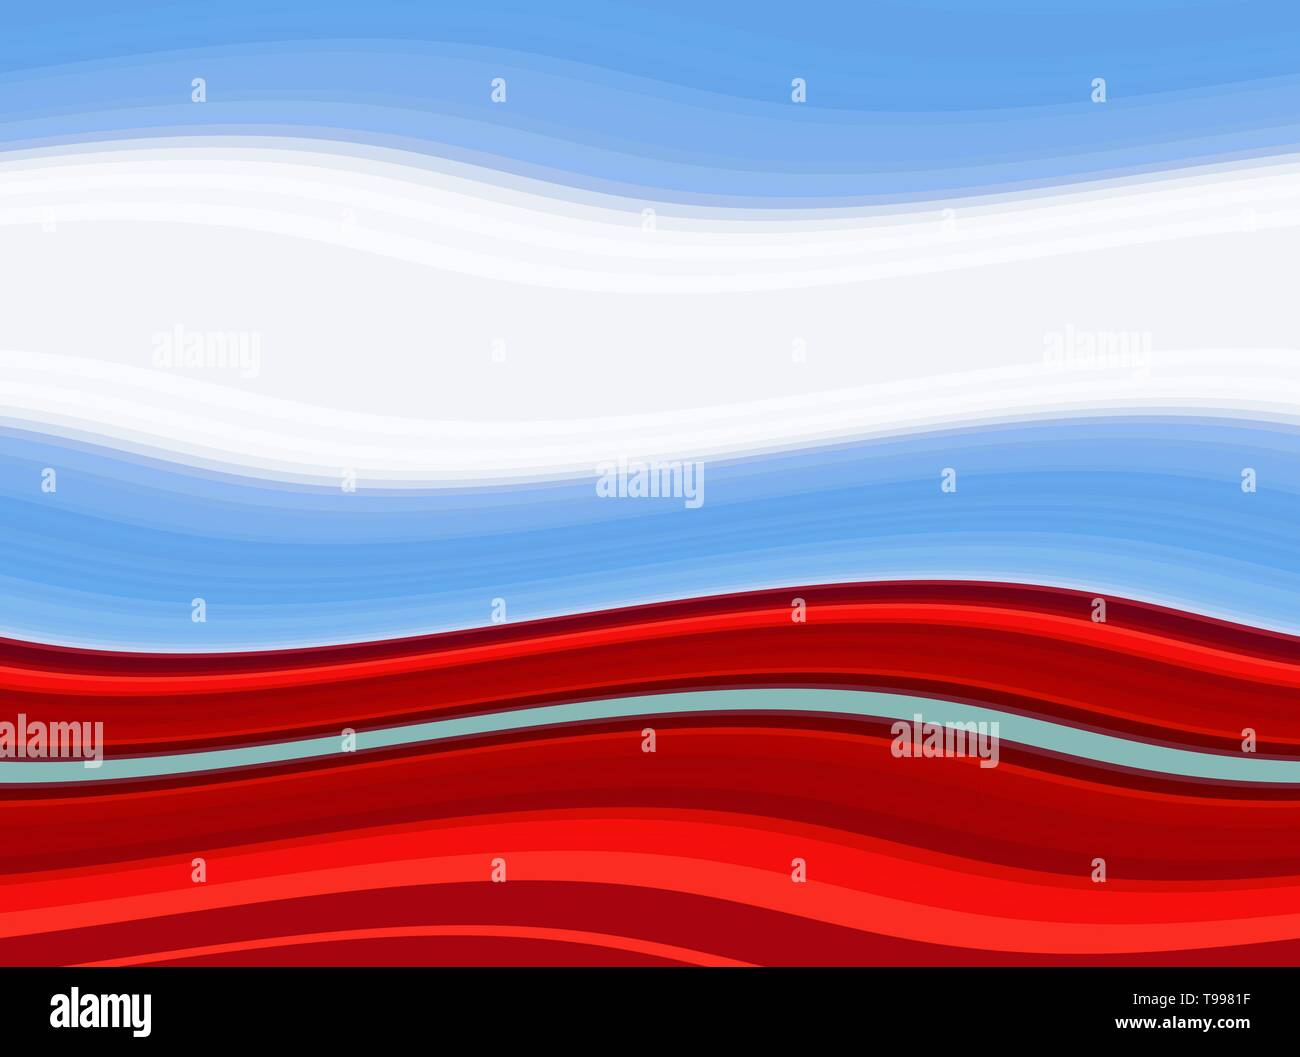 Abstract Sky Blue Strong Red And White Smoke Color Ocean